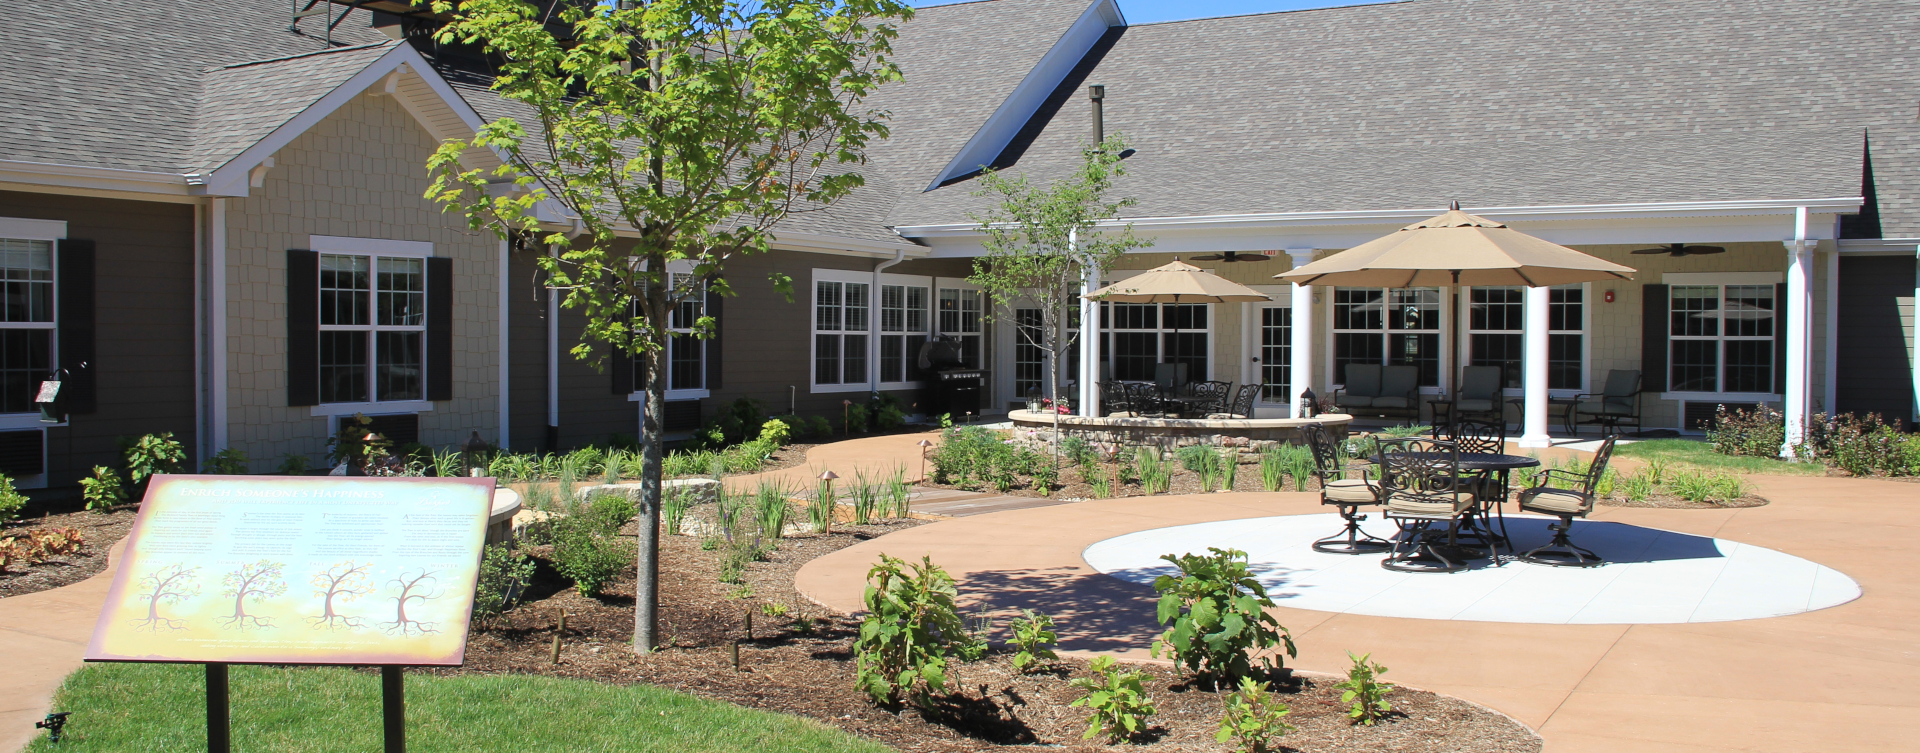 Enjoy the outdoors in a whole new light by stepping into our secure courtyard at Bickford of Tinley Park